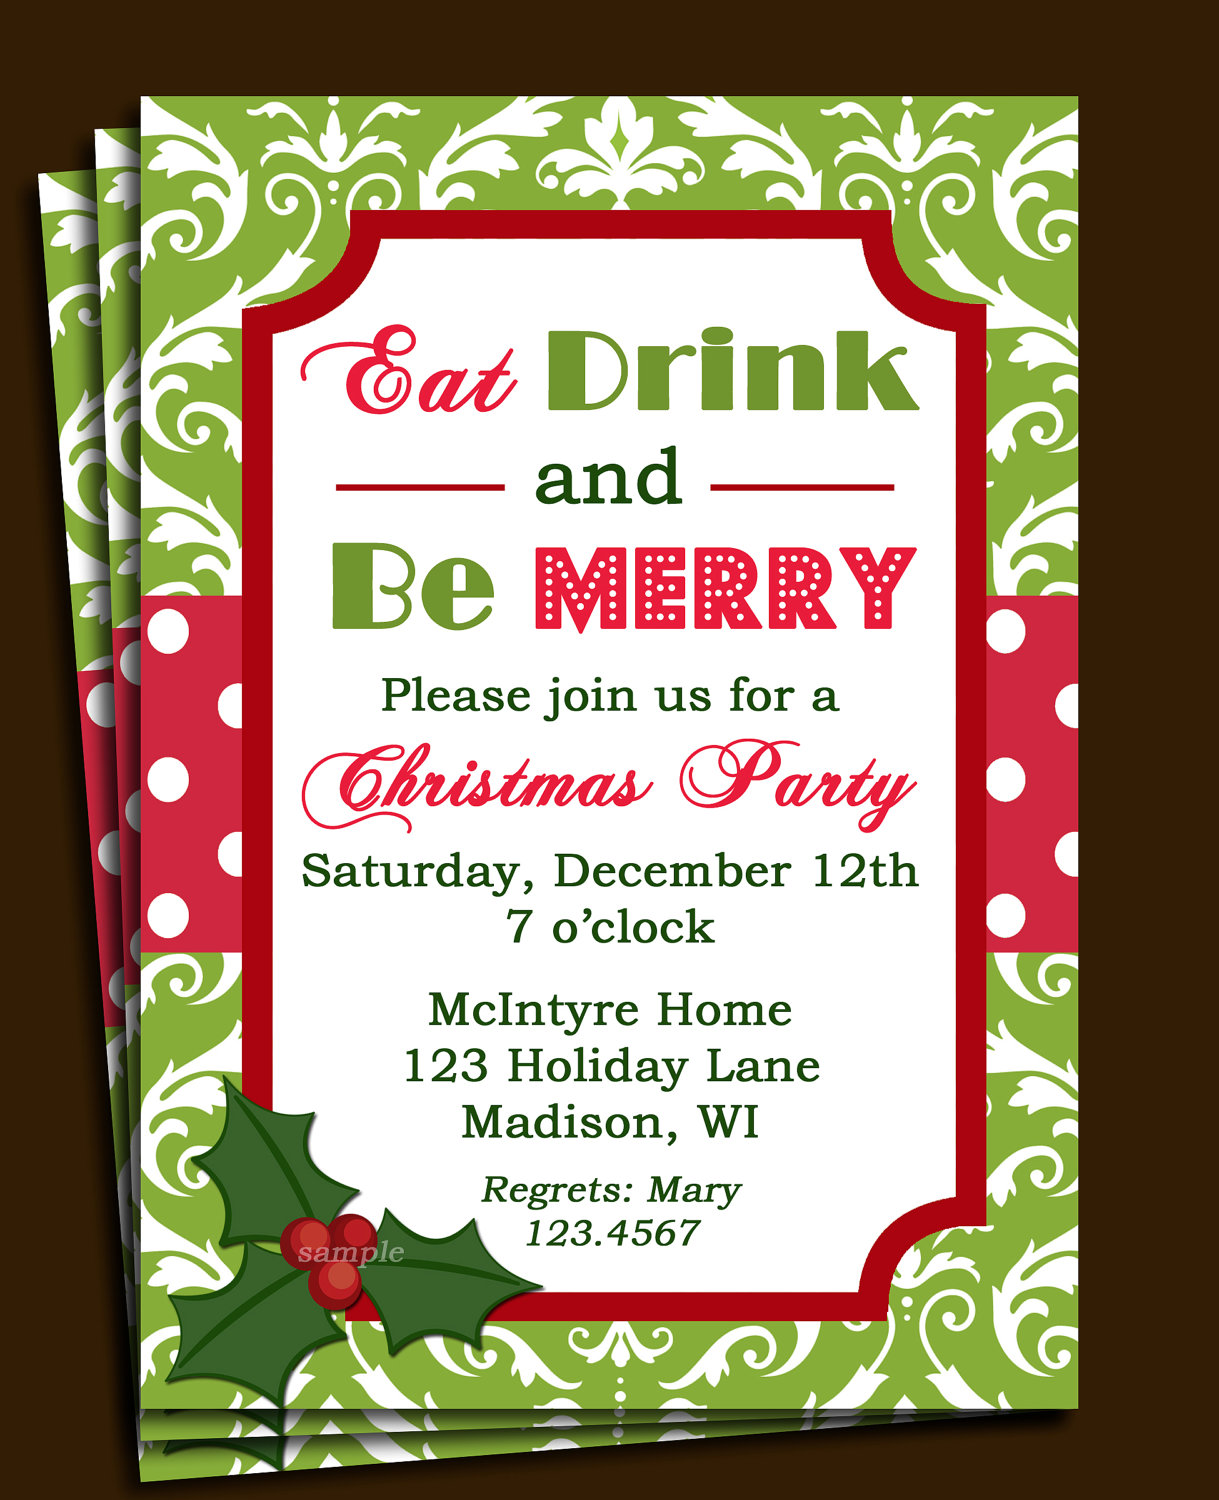 company holiday party clipart clipart kid items similar to christmas party invitation printable green damask